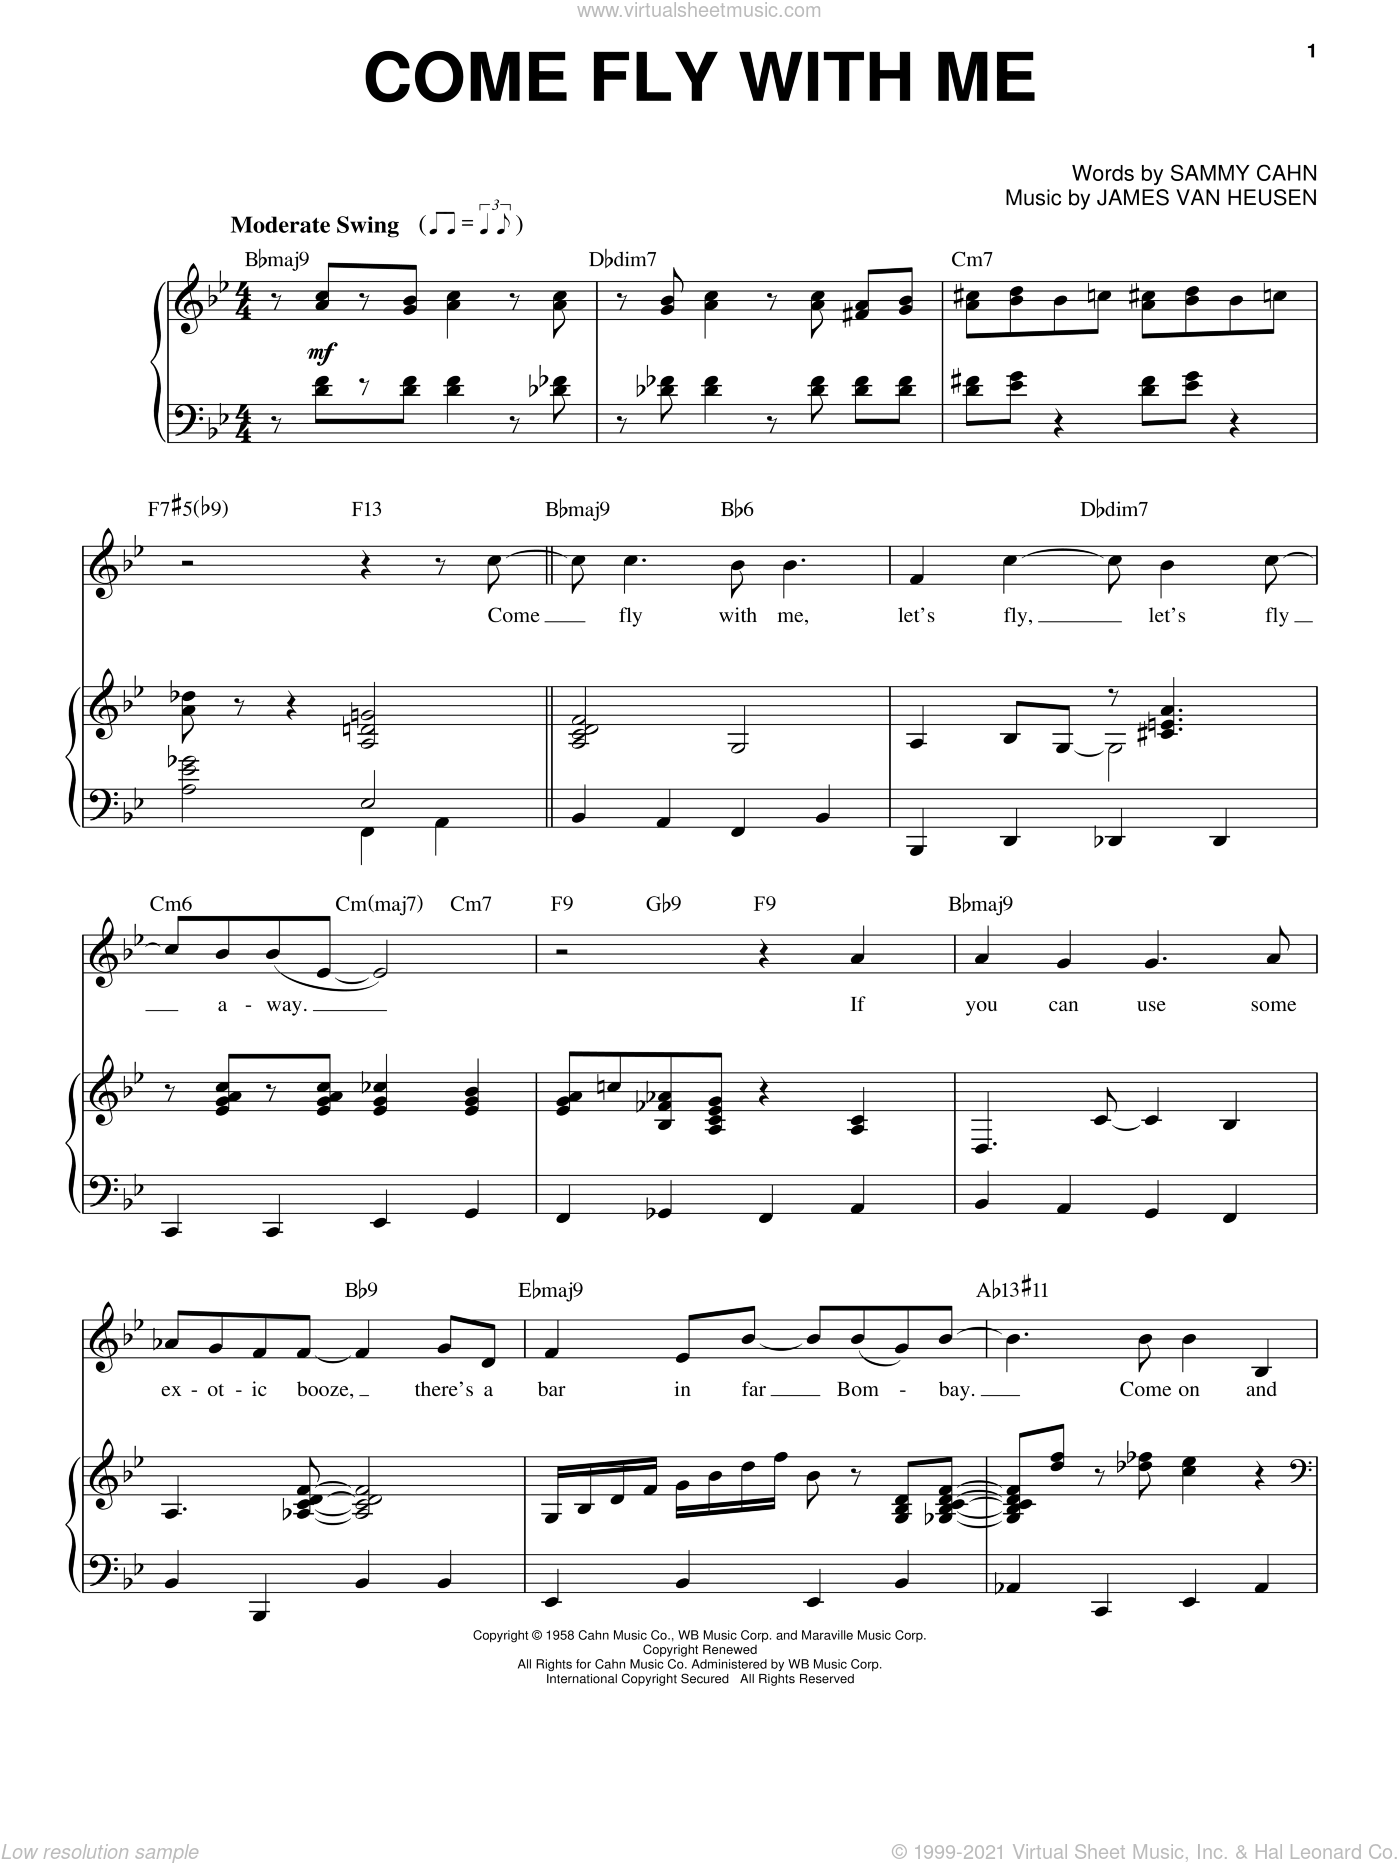 Come Fly With Me sheet music for voice and piano by Jimmy van Heusen